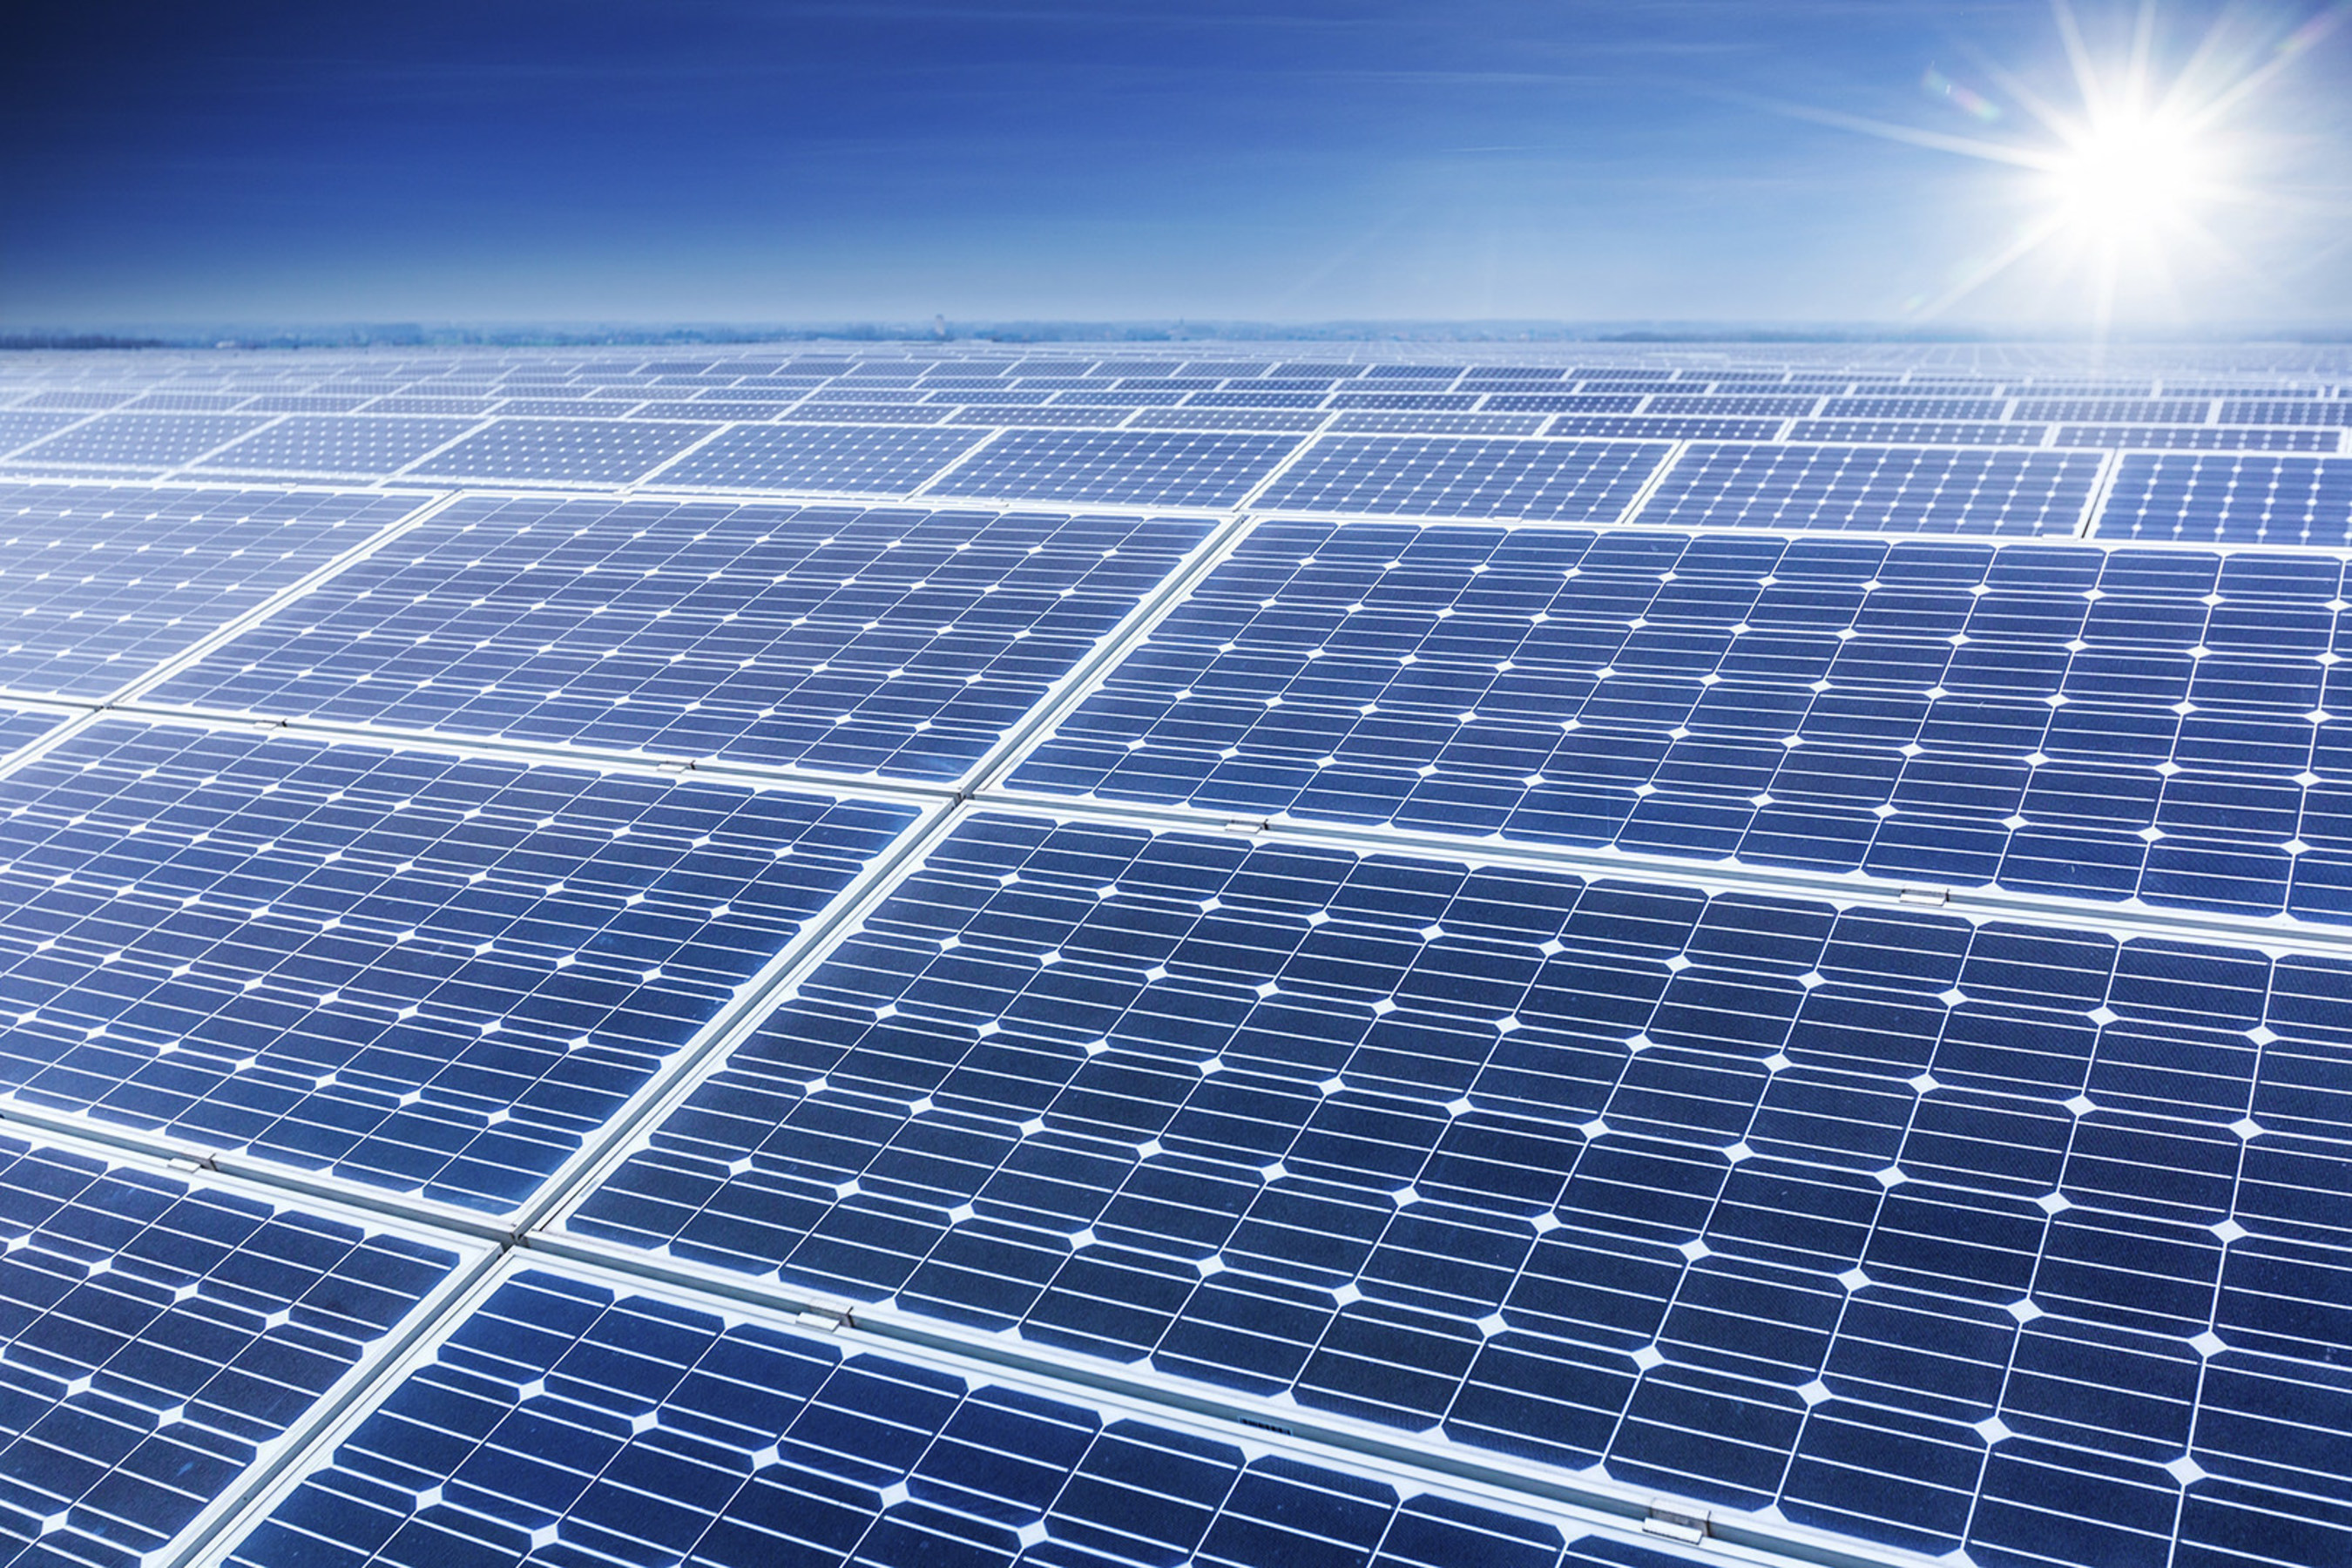 Solar Company Seeks Private Money Investors and Partners Prior to IPO